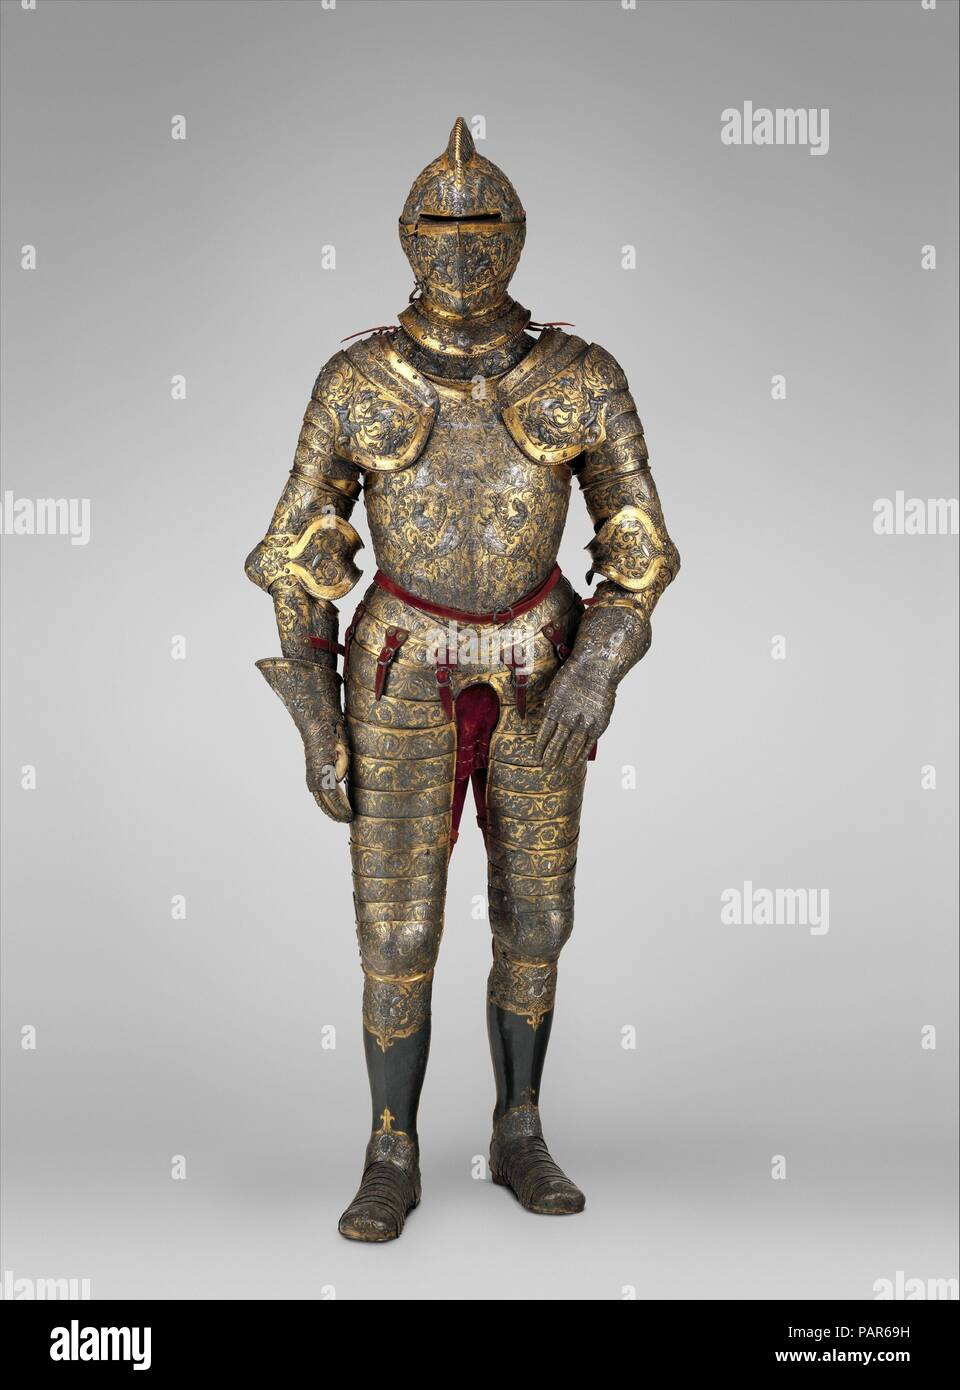 Armor of Henry II, King of France (reigned 1547-59). Culture: French, possibly Paris. Designer: Part of the decoration design by Jean Cousin the Elder (French, Souci (?) ca. 1490-ca. 1560 Paris (?)); Part of the decoration design possibly by Baptiste Pellerin (French, documented in Étampes 1542-75 Paris). Dimensions: H. 74 in. (187.96 cm); Wt. 53 lb. 4 oz. (24.20 kg). Date: ca. 1555.  This is one of the most elaborate and complete French parade armors, and it retains much of its original coloring. The surfaces are covered by dense foliate scrolls inhabited by human figures and a variety of fab - Stock Image